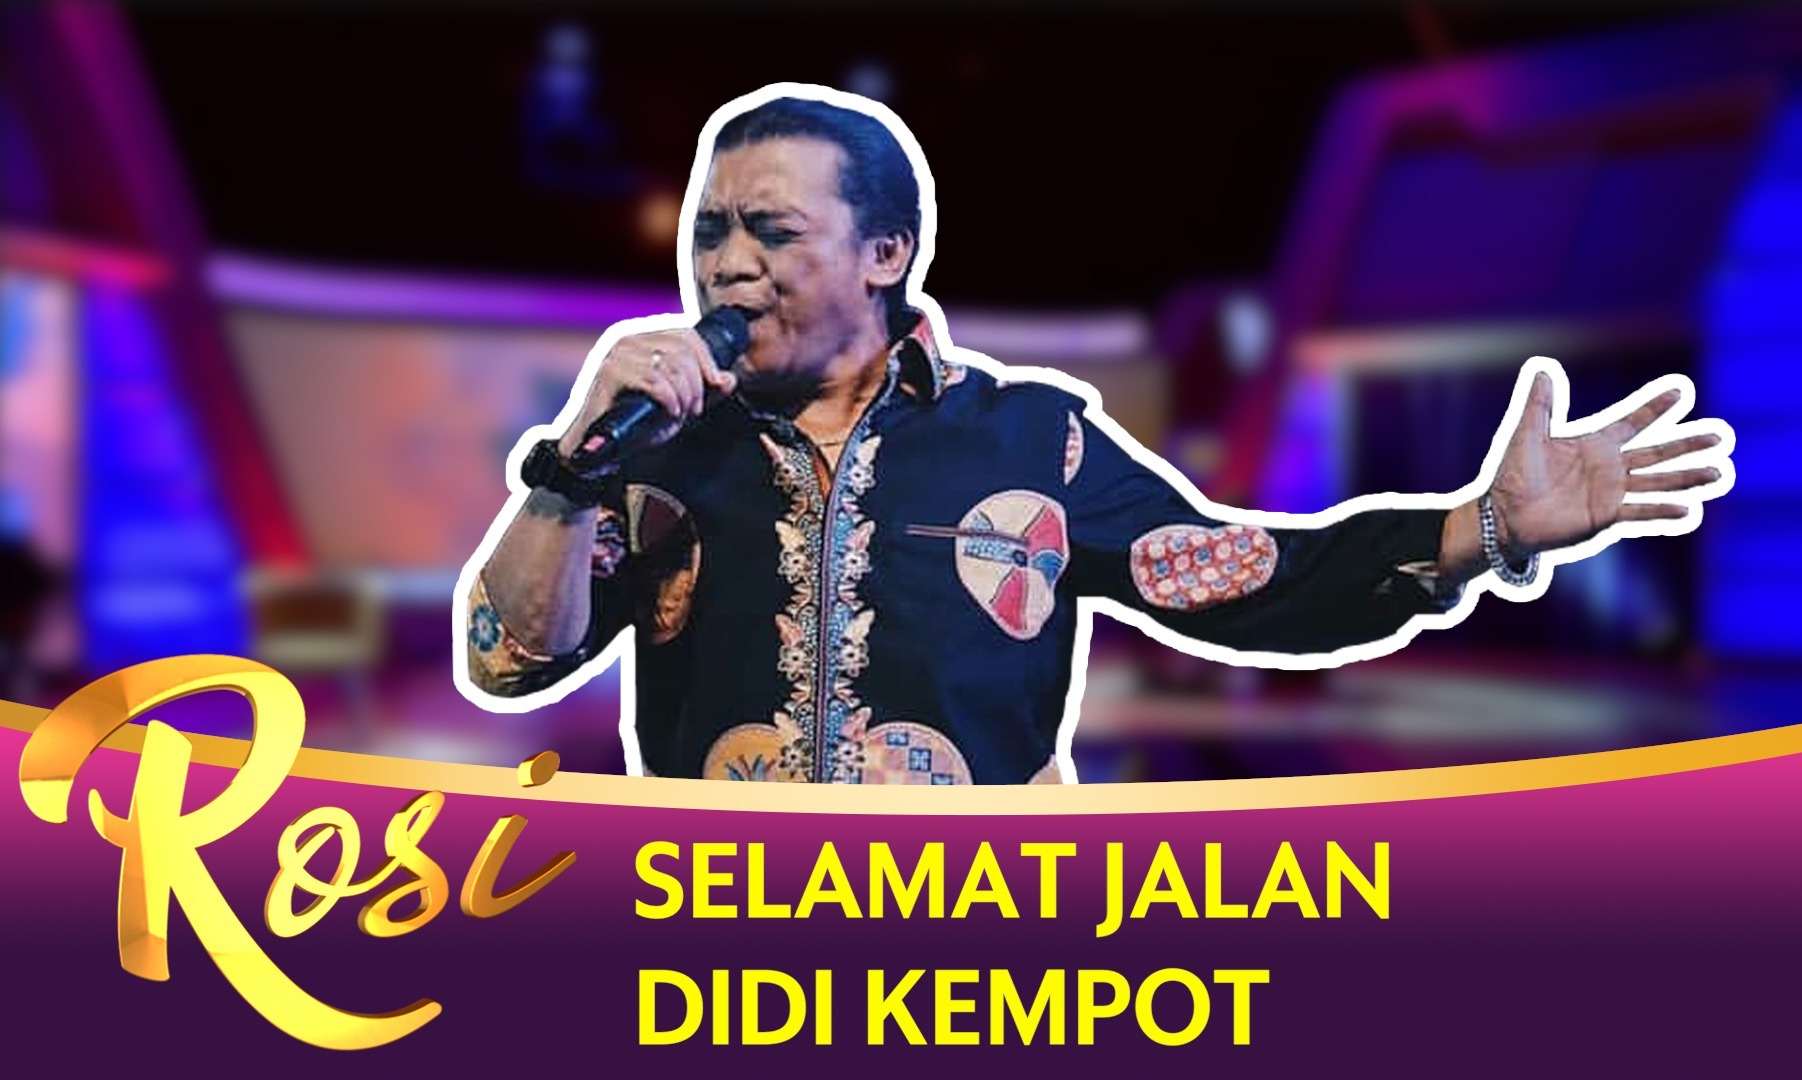 tribute-to-didi-kempot-the-godfather-of-broken-heart-bag-1